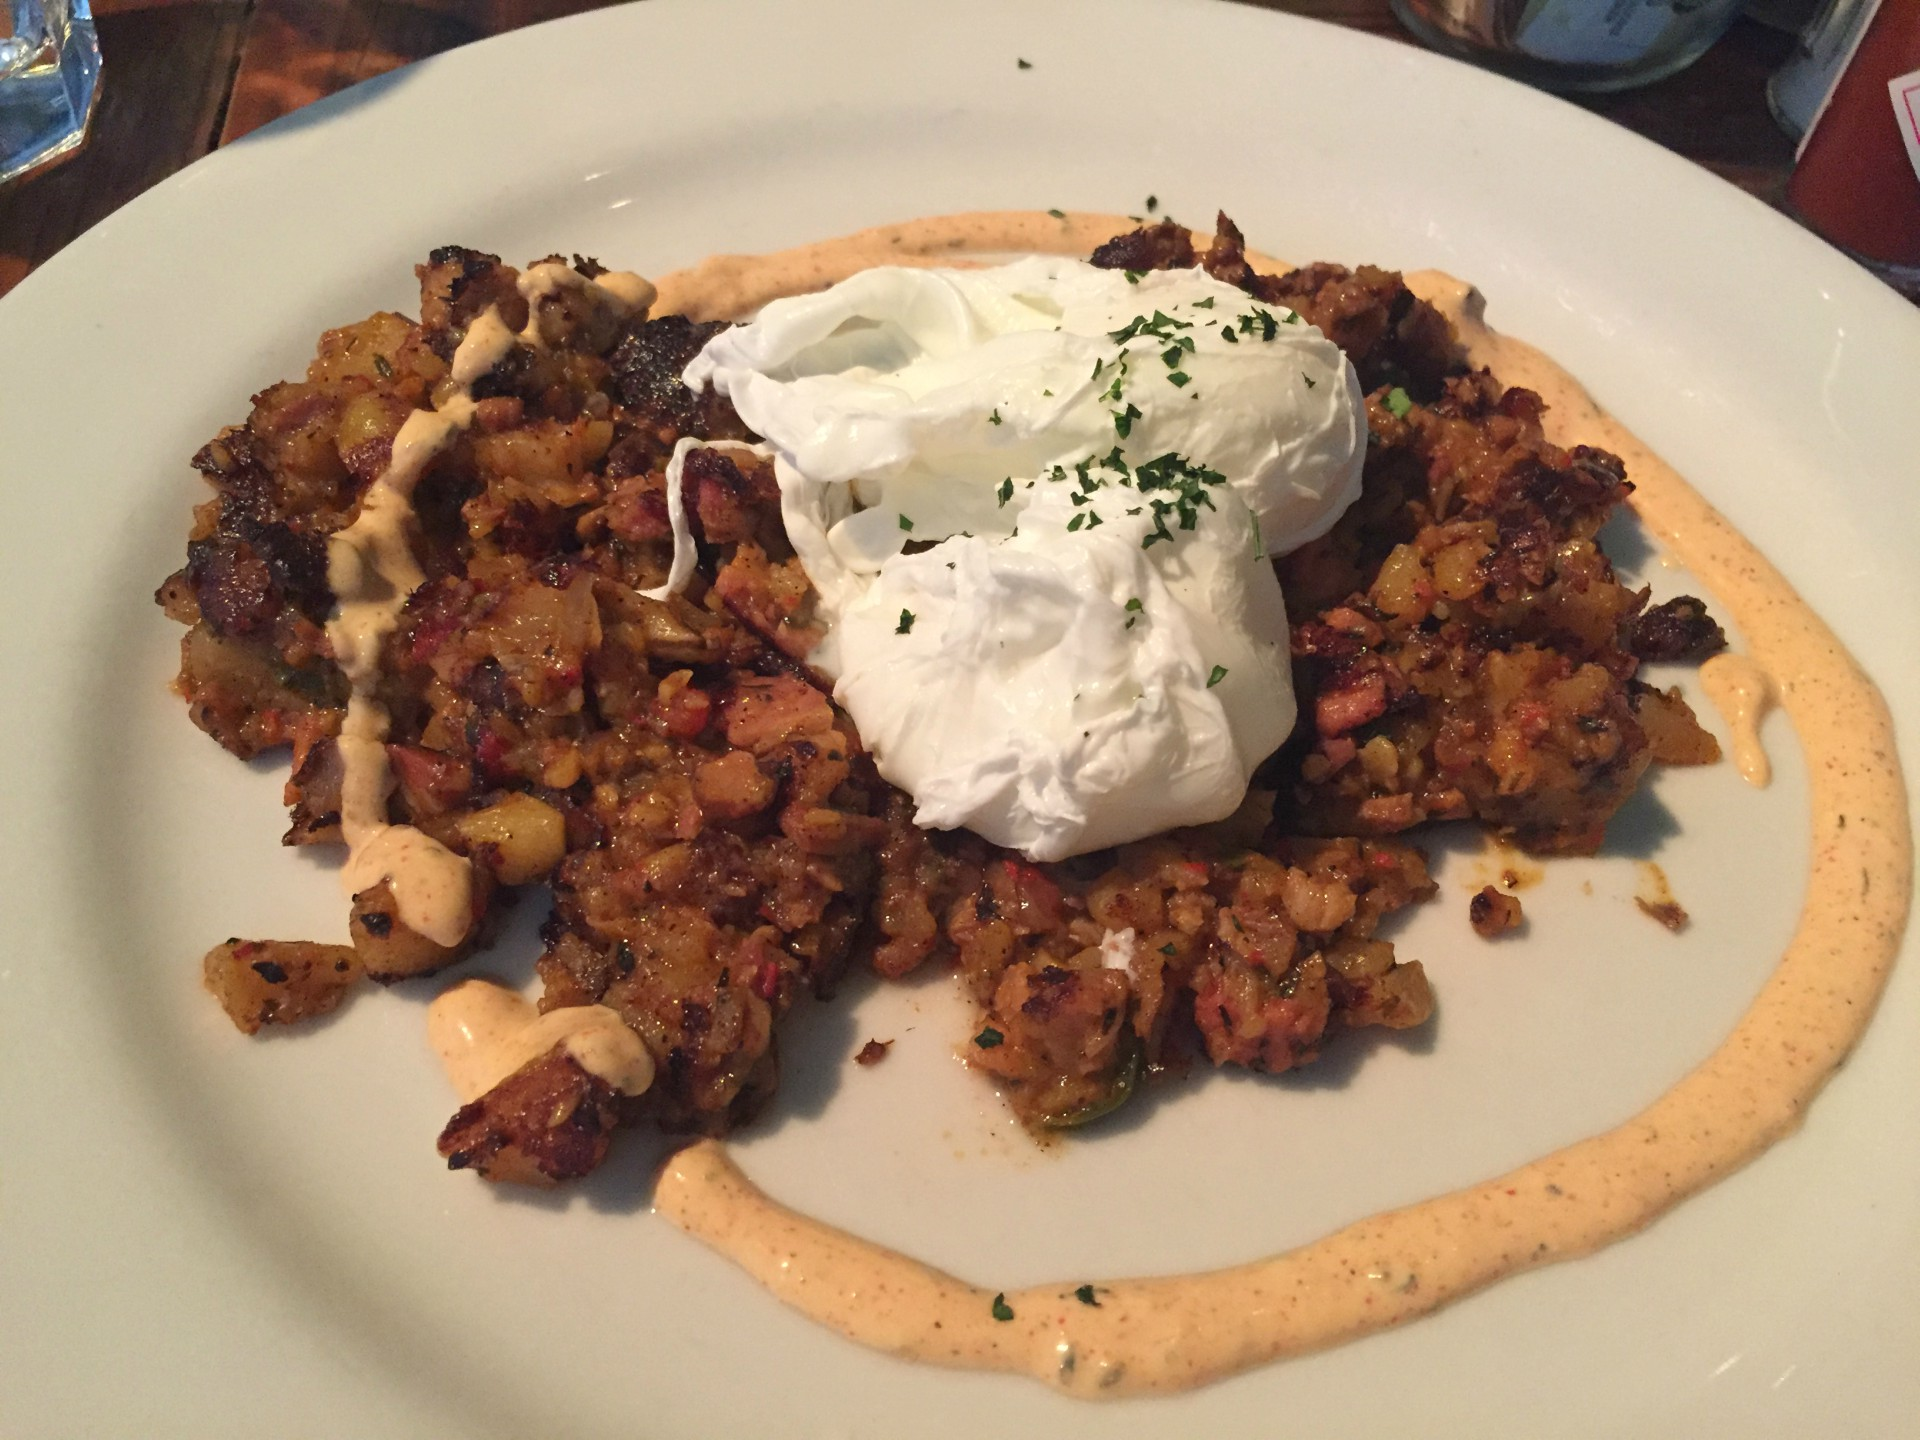 A pork hash exemplified the restaurant's zero waste policies, featuring pork leftover from making other dishes.